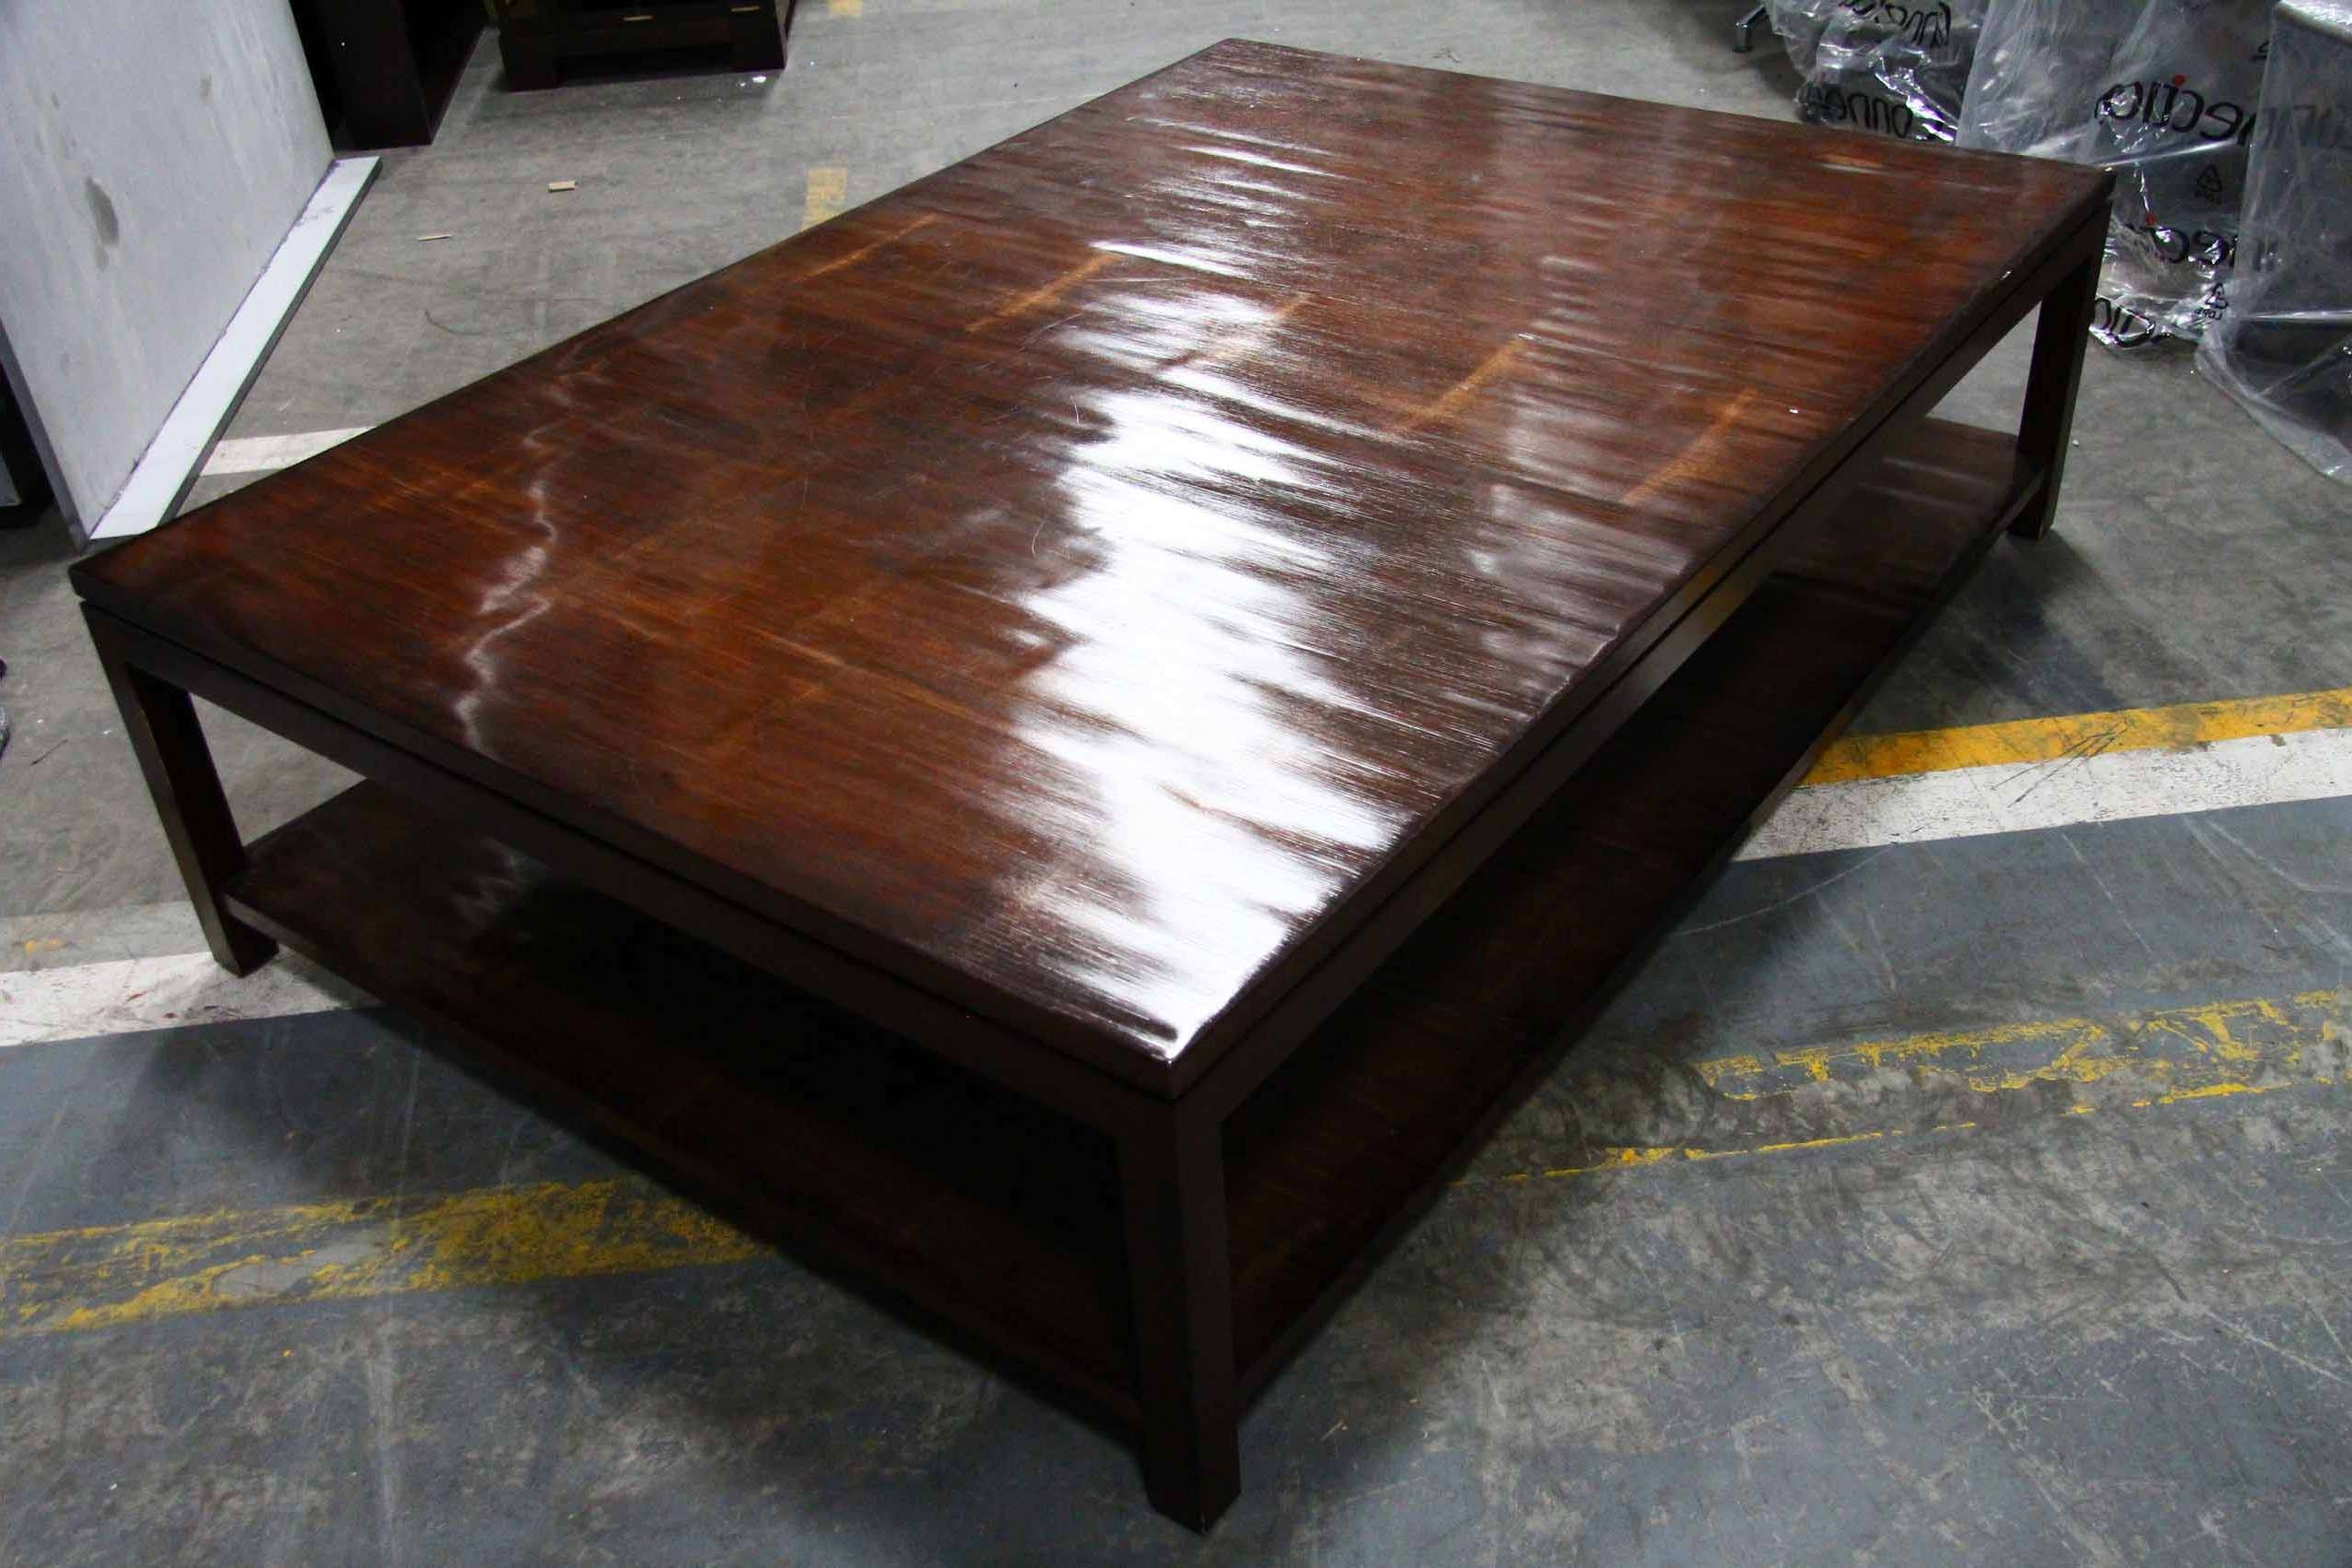 Most Current Low Coffee Tables With Storage Inside Simple Dark Wood Low Coffee Table Large Coffee Table With Storage (View 15 of 20)